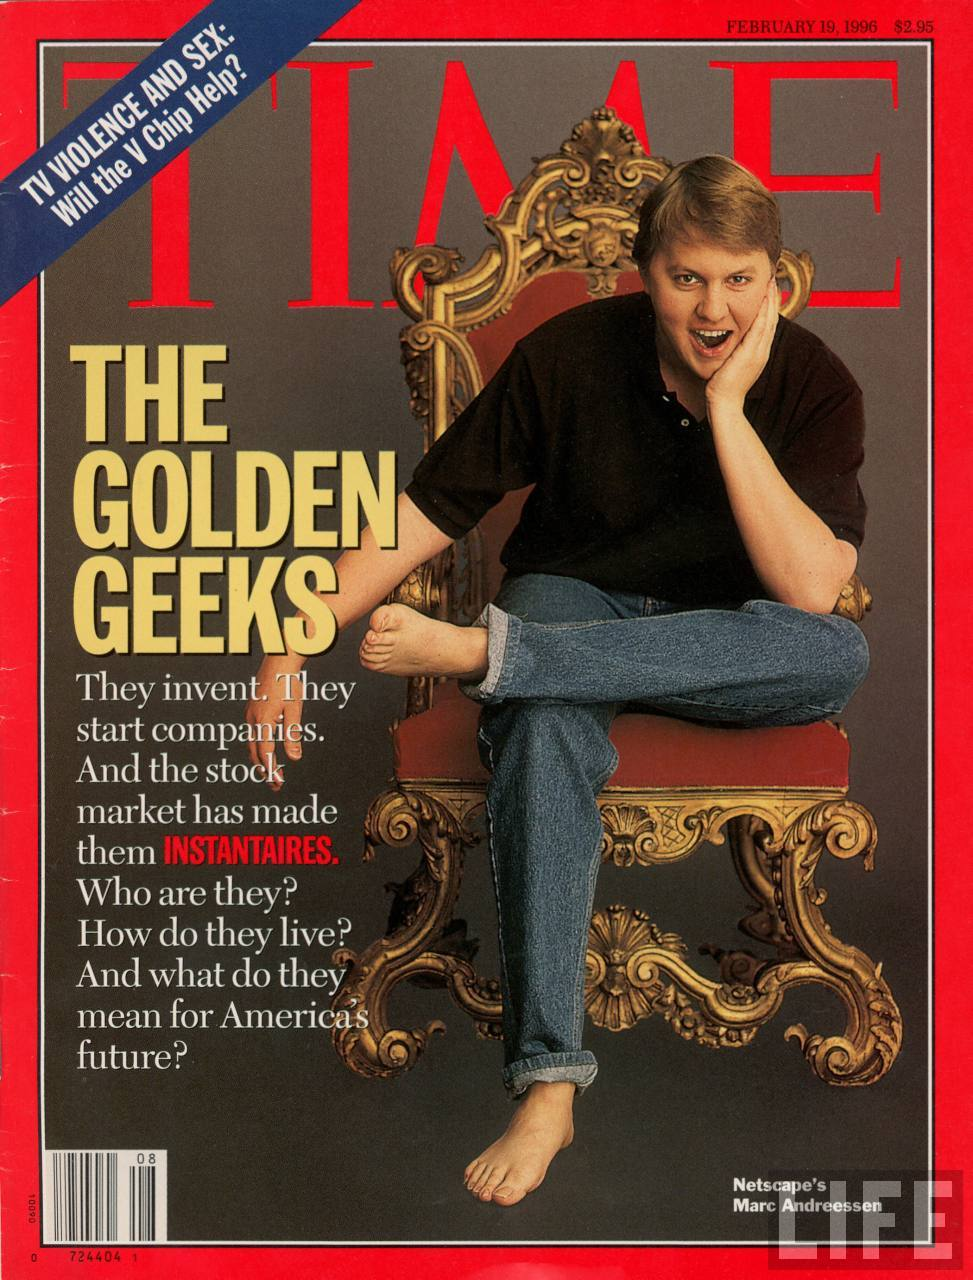 Vintage porn mag adverts Marc Andreessen on the cover of Time Magazine, February 19, 1996